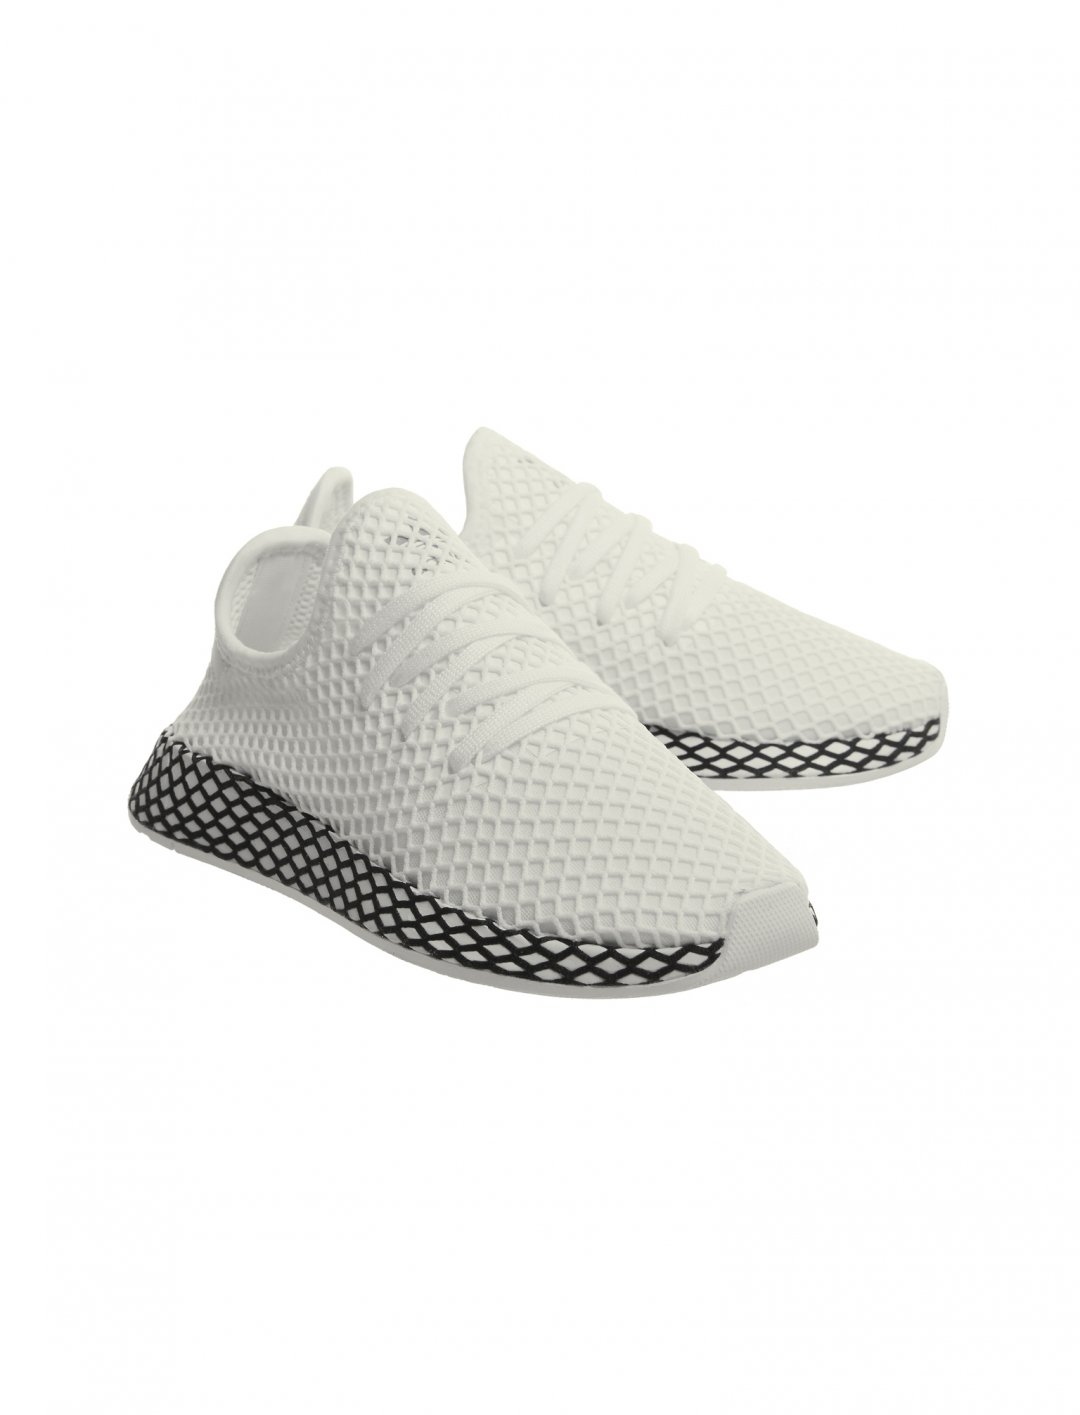 "Imani's Deerupt Trainers {""id"":12,""product_section_id"":1,""name"":""Shoes"",""order"":12} adidas"